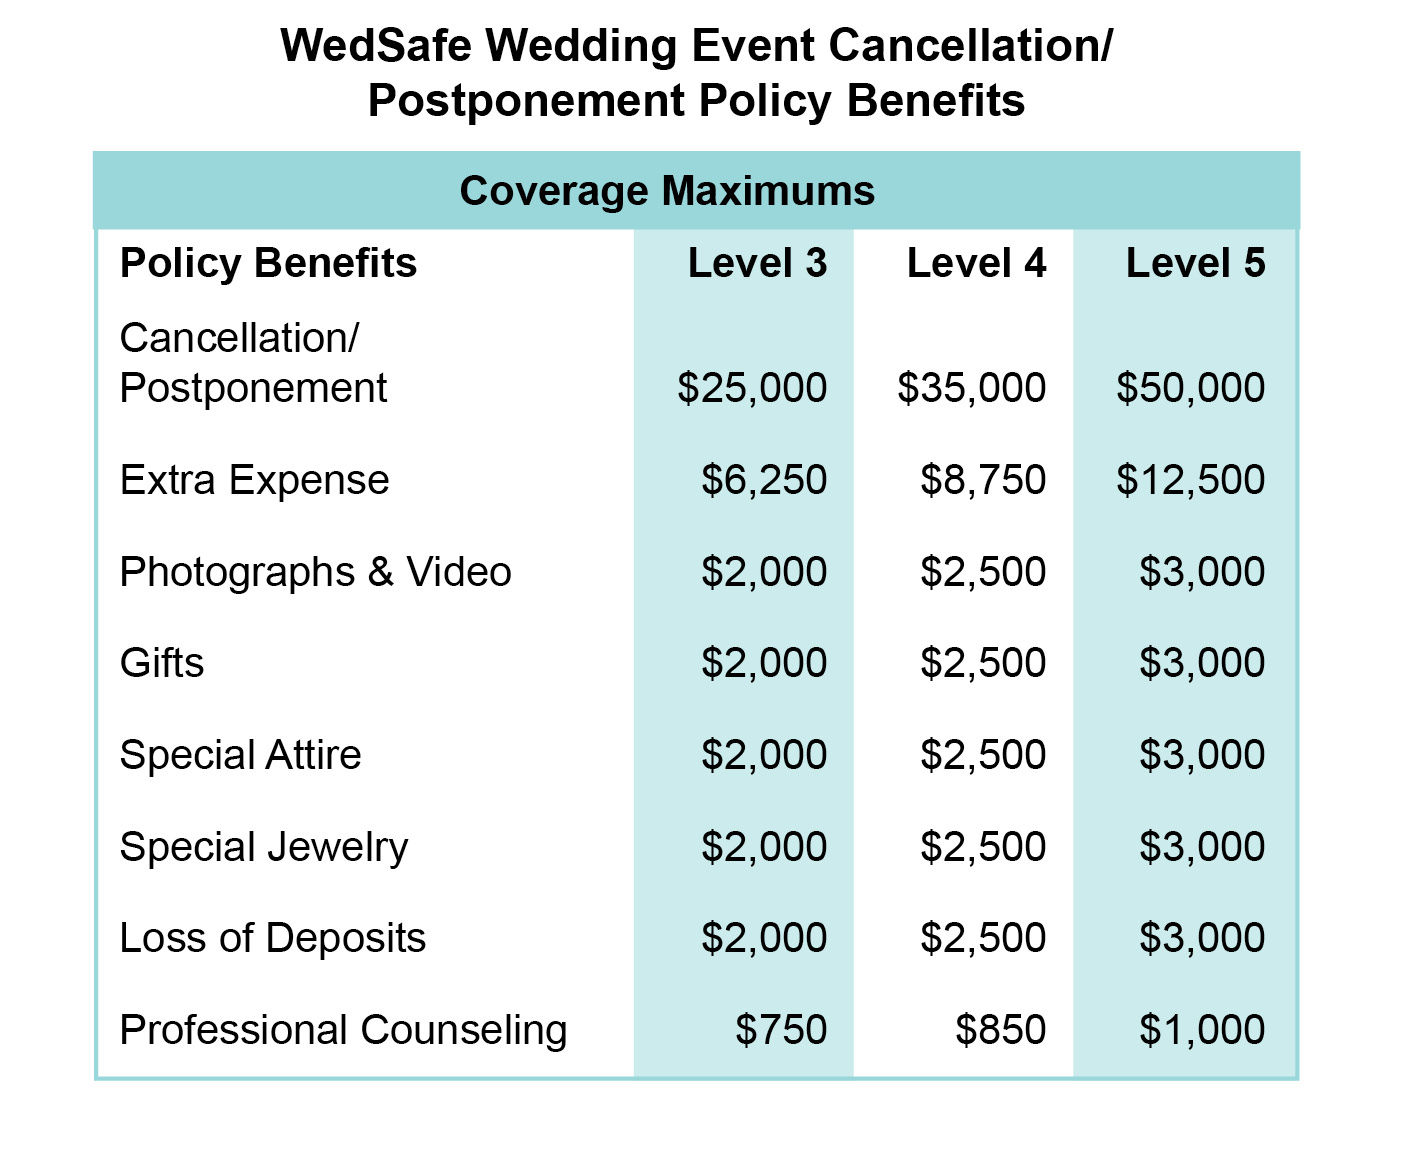 WedSafe Wedding Event Cancellation/Postponement Policy Benefits Table